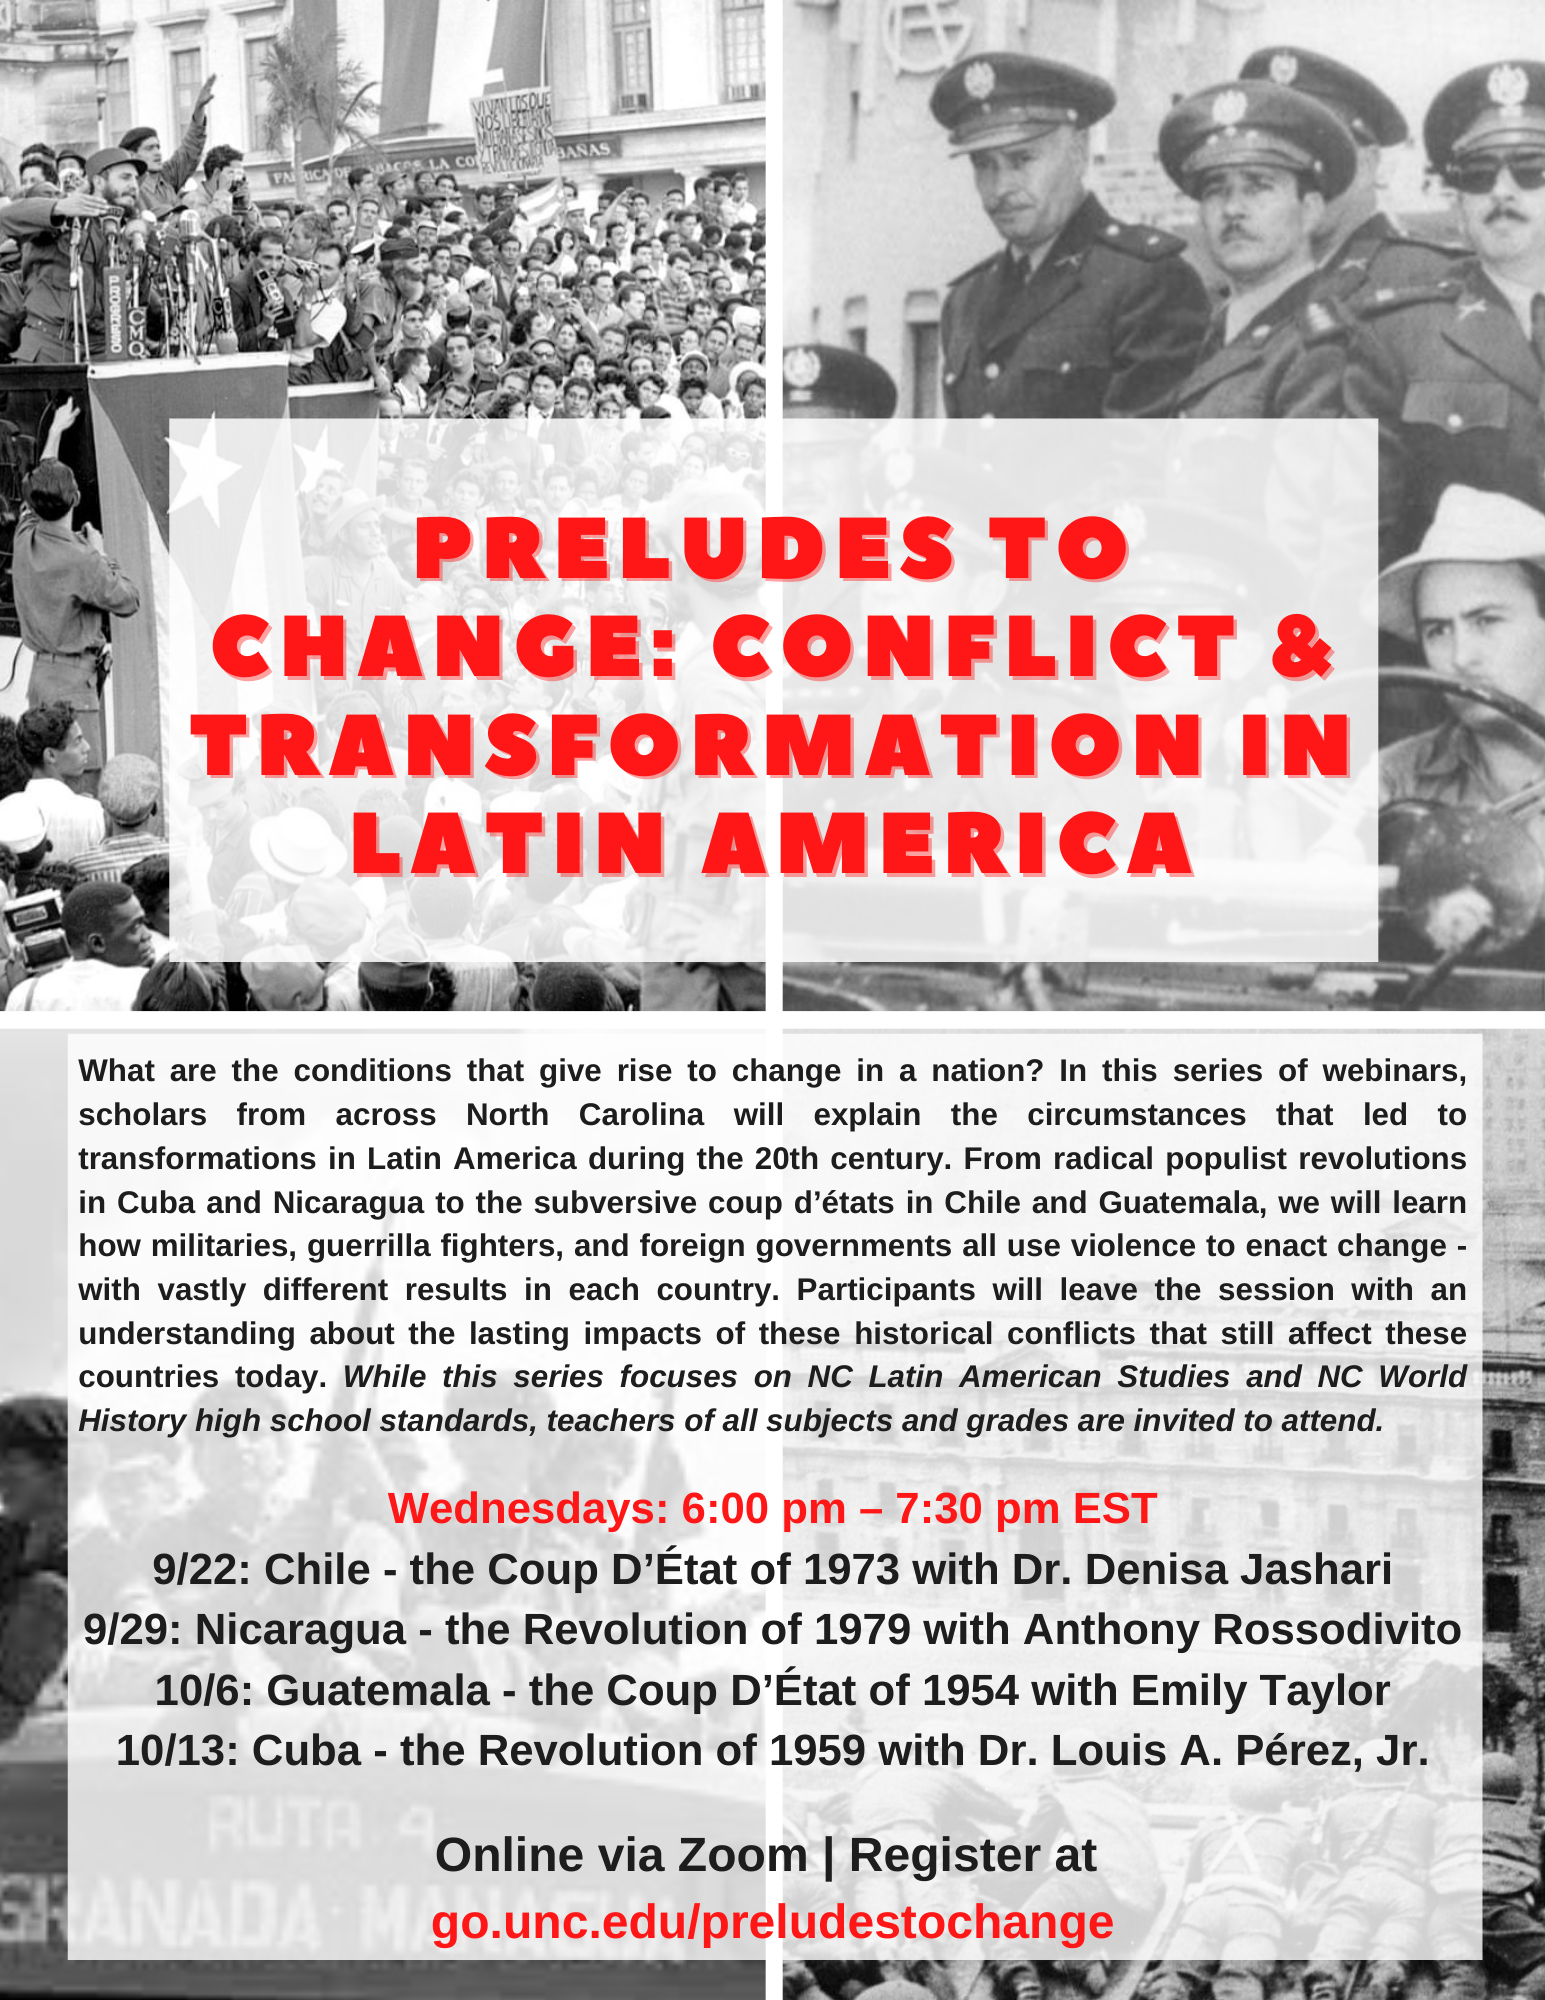 Preludes to Change: Conflict and Transformation in Latin America - Nicaragua